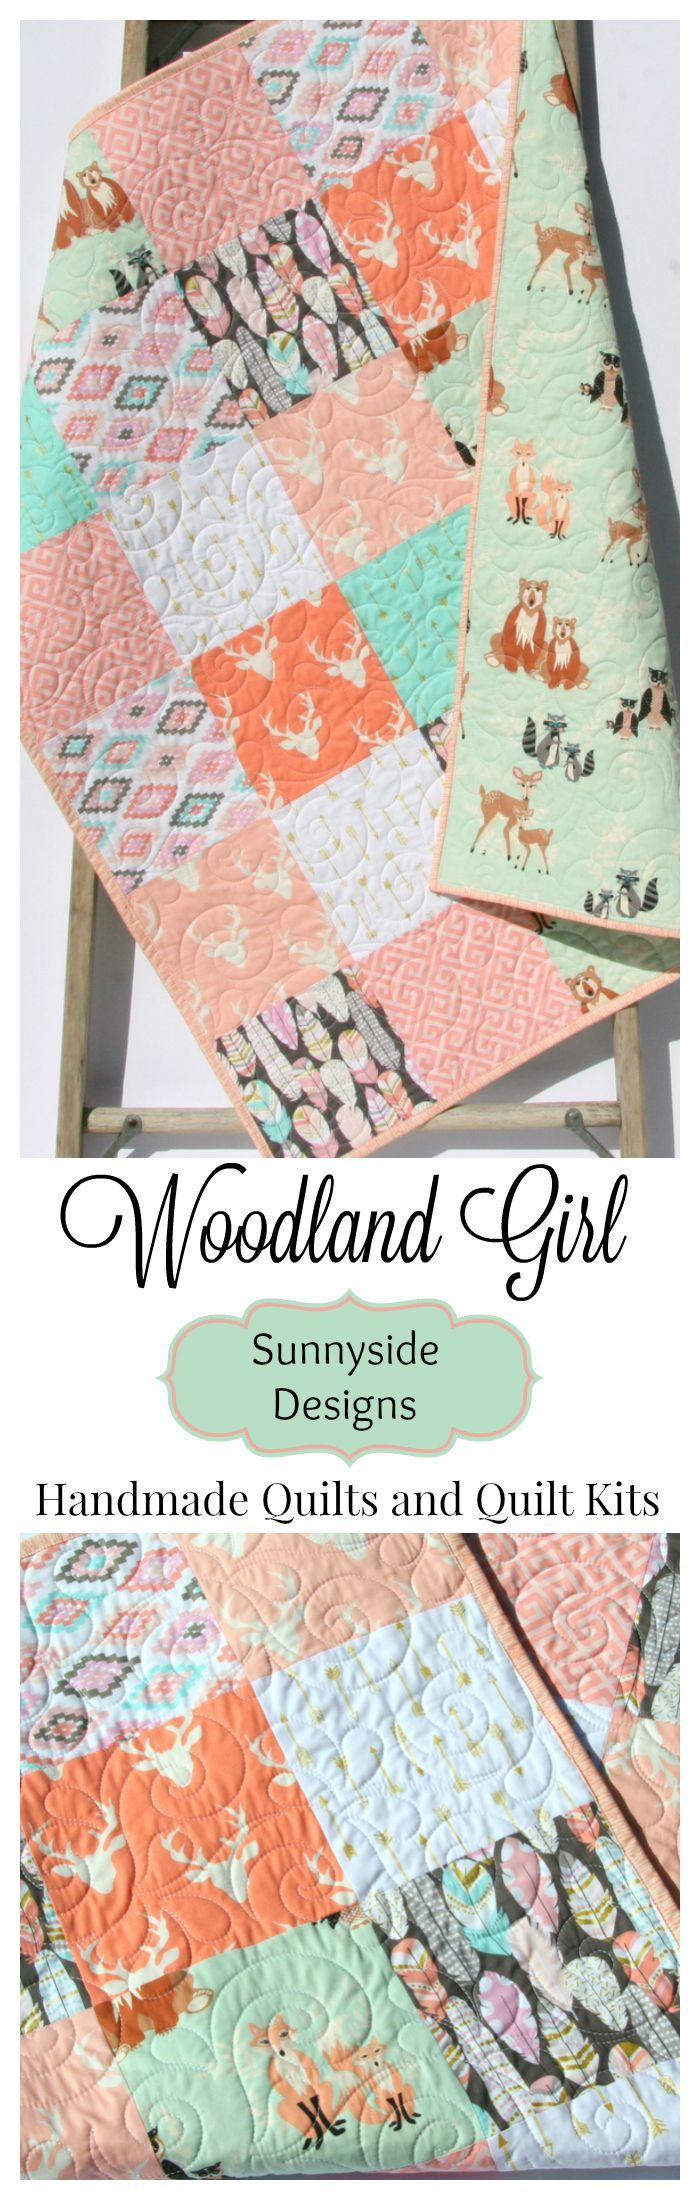 Woodland Girl Baby Bedding Handmade Quilt, Deer Feathers Aztec Tribal Fox owls Bear Arrows Woodland Animals, Baby Quilt Kit, Toddler Quilt, DIY Craft Easy Project, Sewing Quilting Kit, Designer Baby Bedding Modern Gold Metallic Nursery by Sunnyside Designs